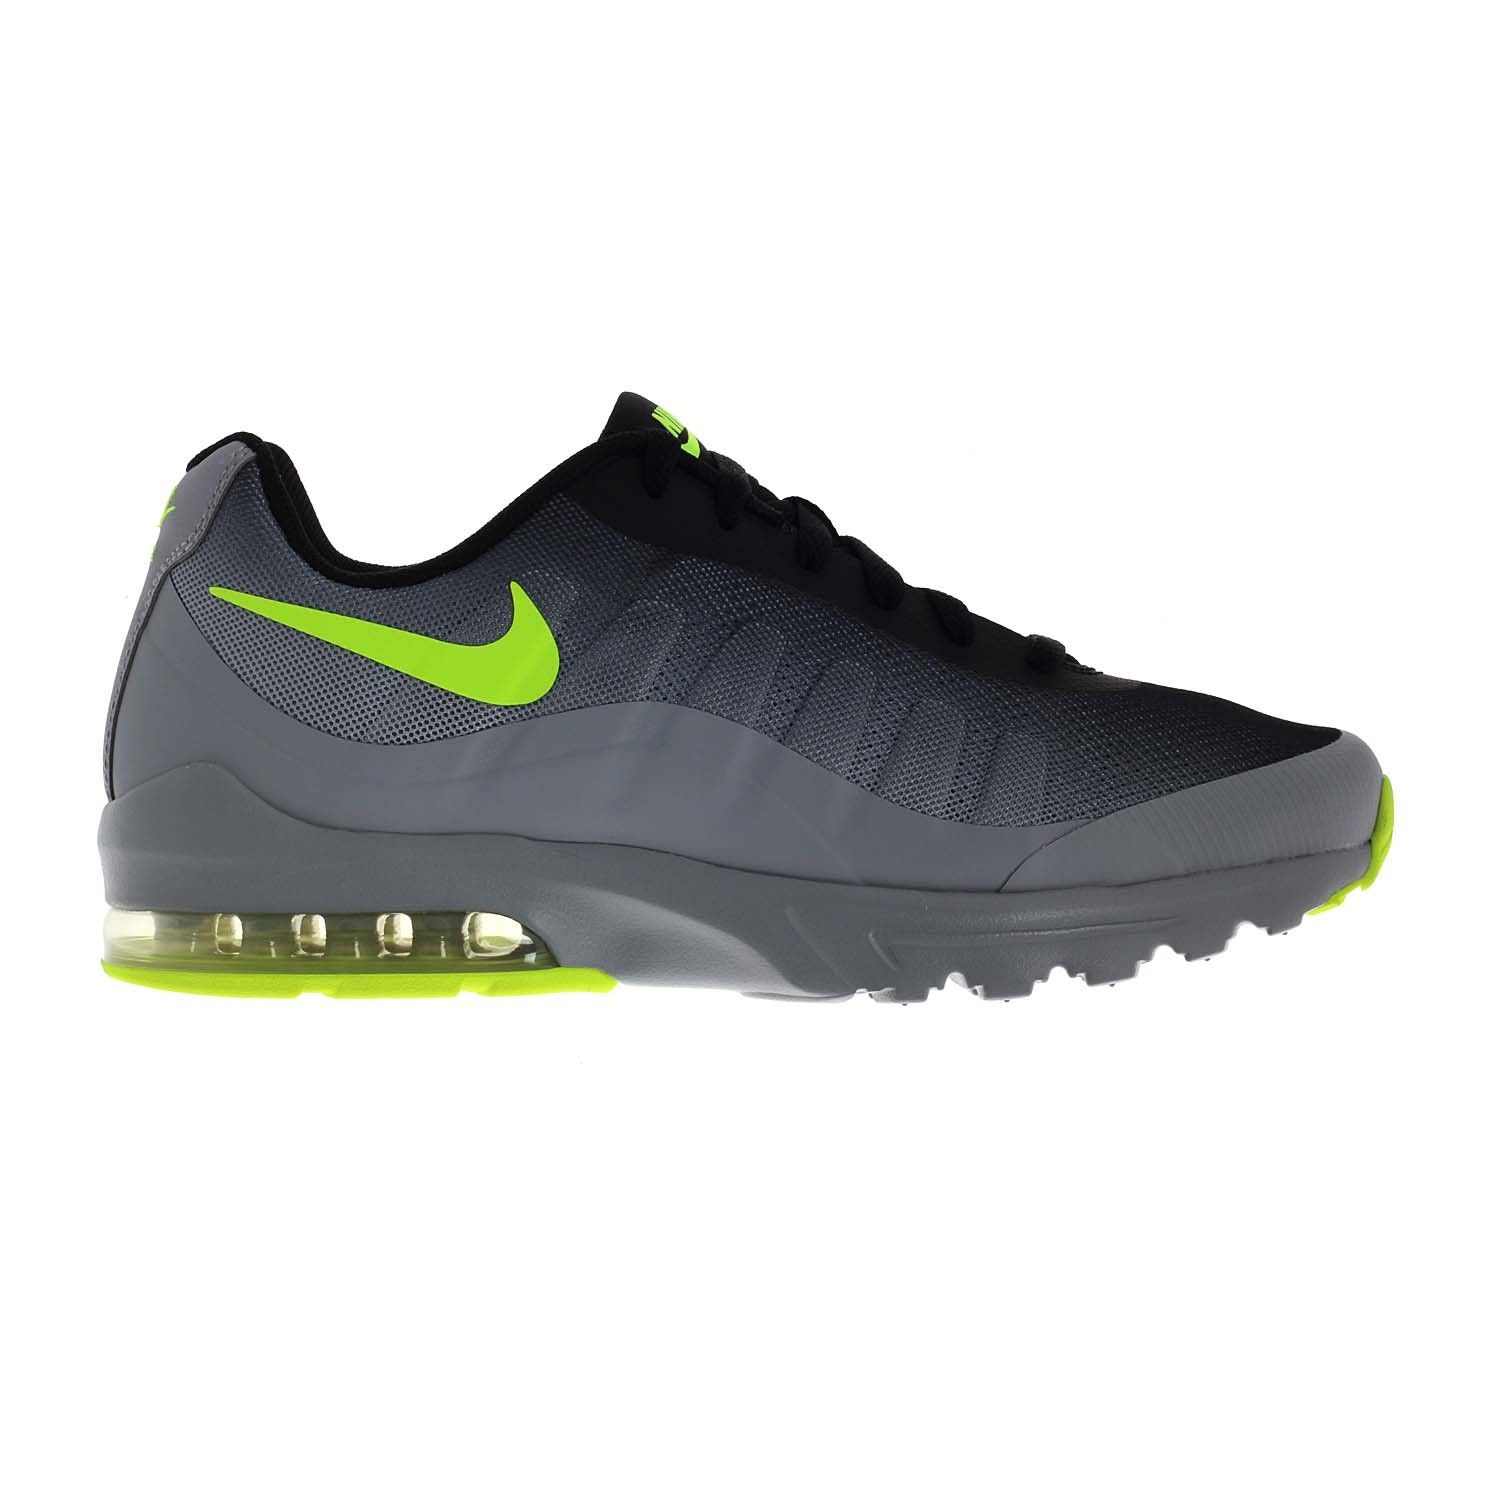 cheaper 4ae2f 02553 ... Running Shoes BlackWhite Nike Air Max Invigor Print (749688-070) ...